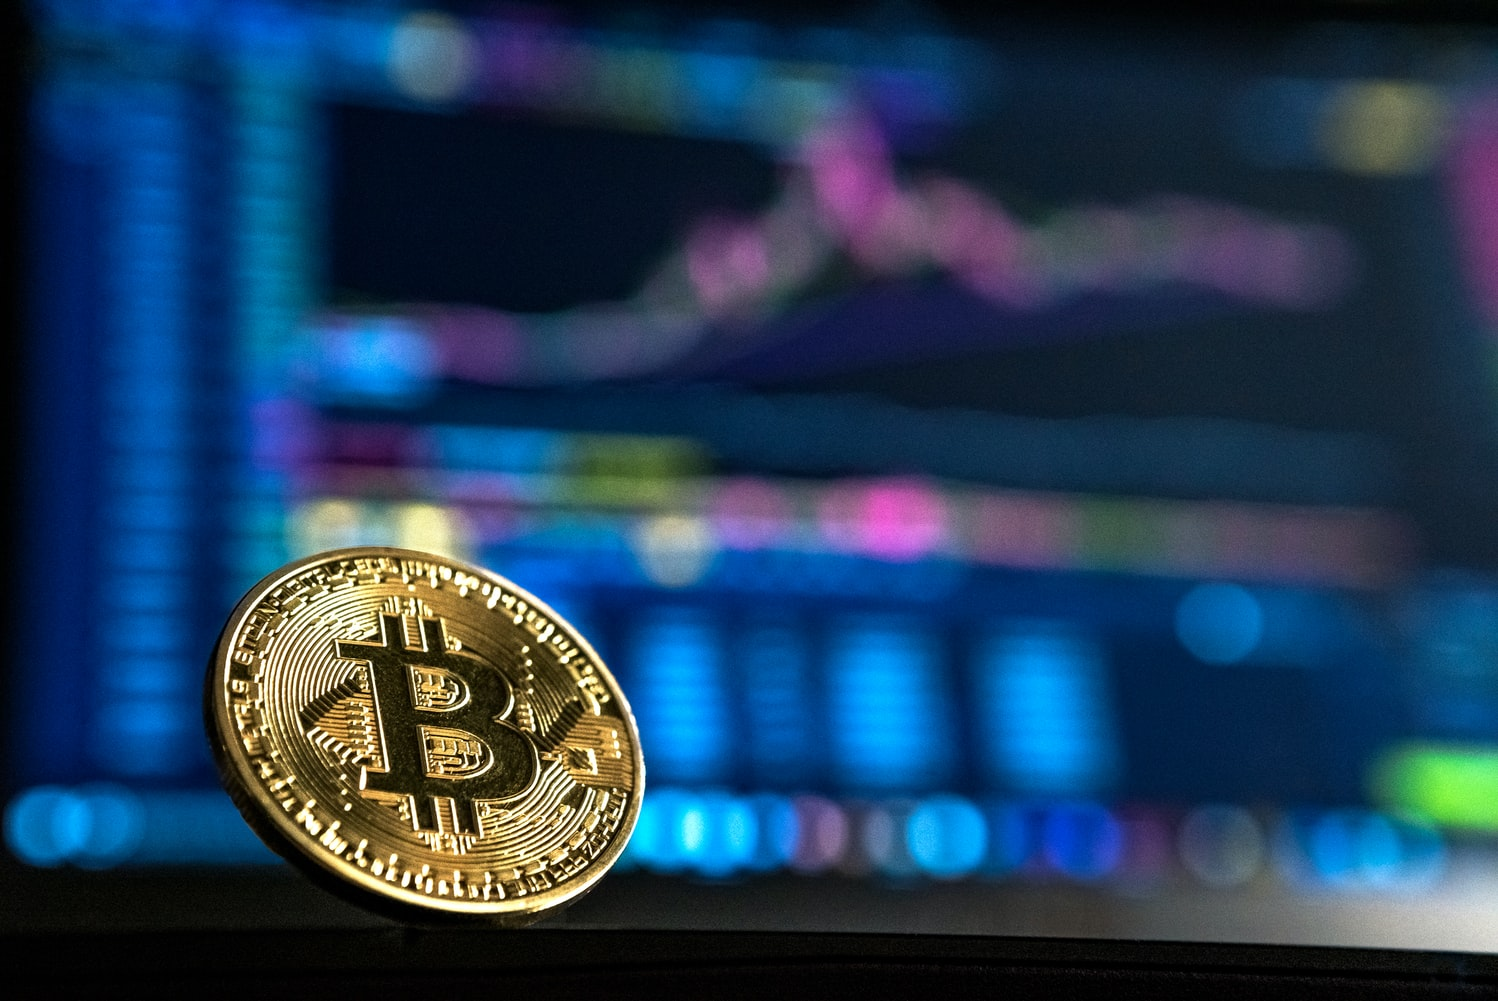 Bitcoin Price Analysis: BTC/USD Consolidates, Is $10,000 Achievable Before July?